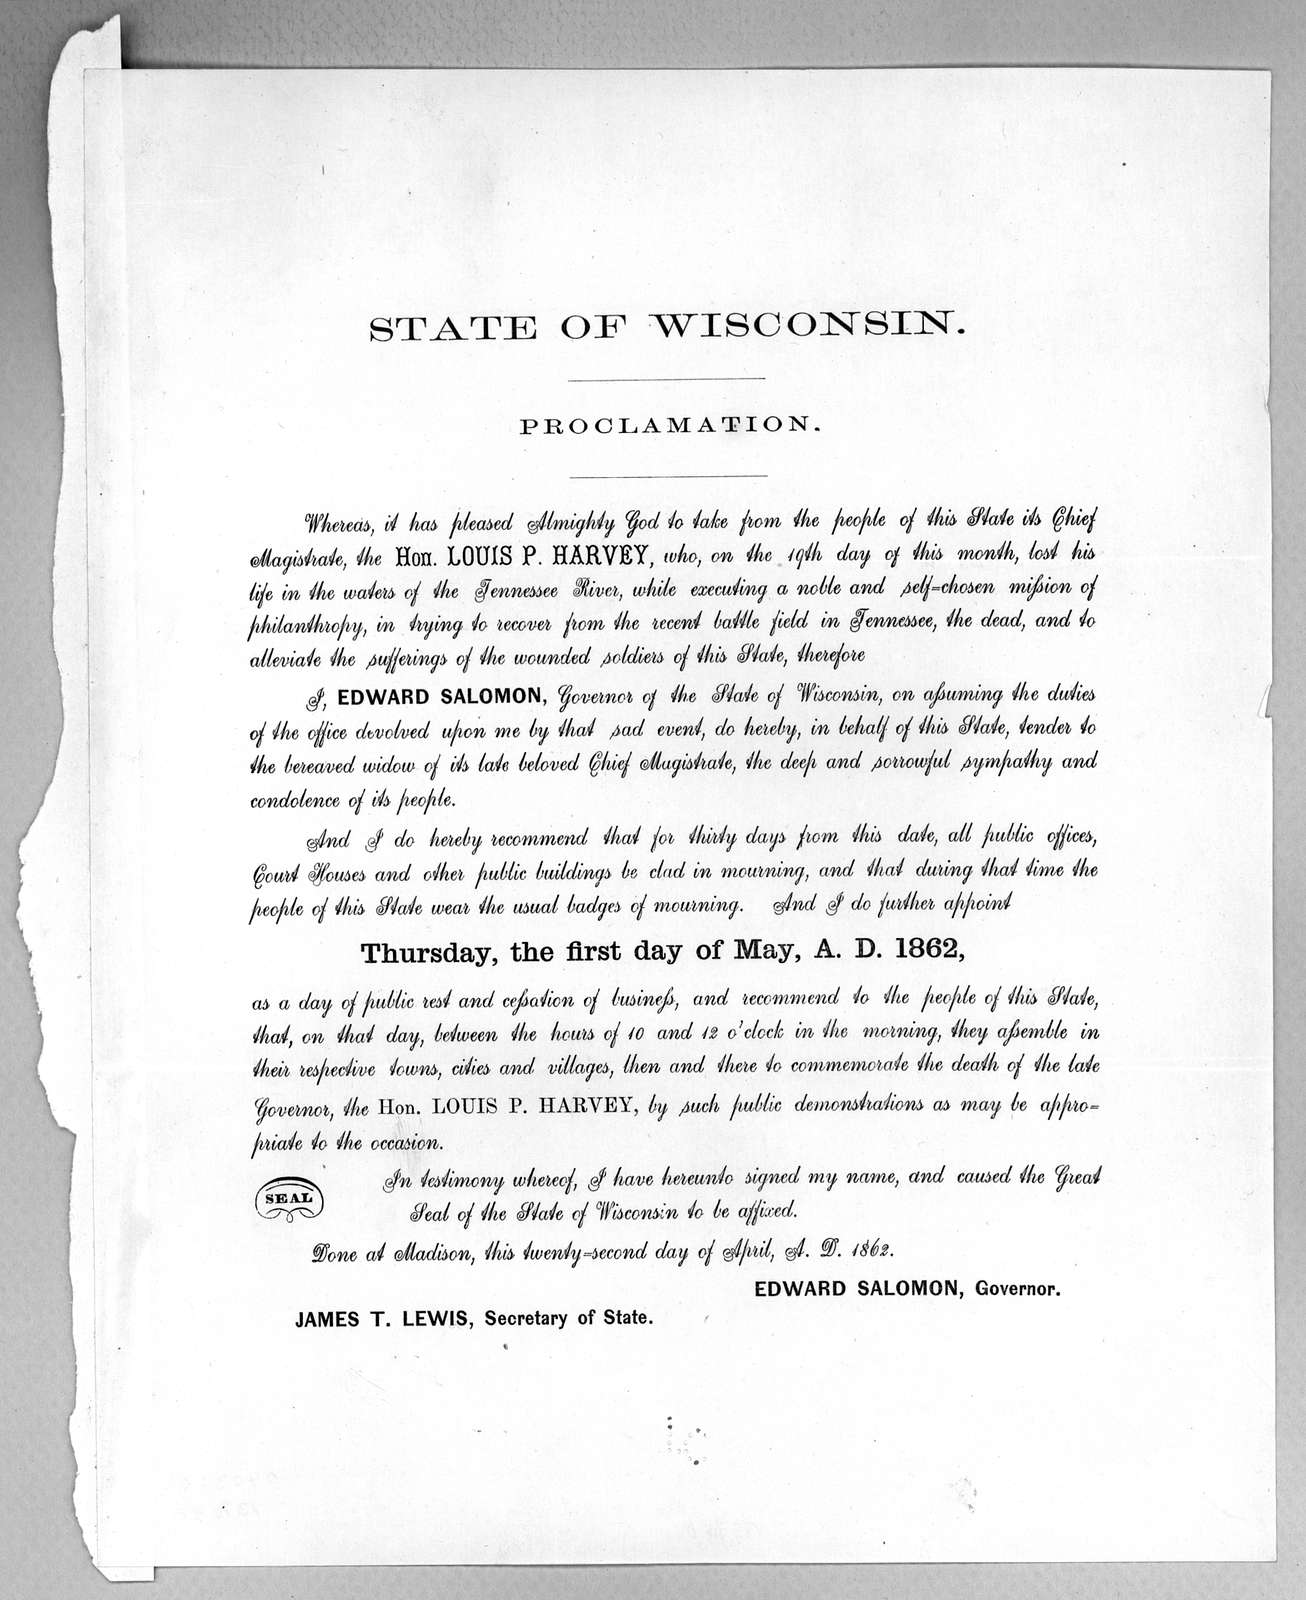 State of Wisconsin. Proclamation. Whereas, it has pleased Almighty God to take from the people of this state its chief magistrate the Hon. Louis P. Harvey, who, on the 19th day of this month, lost of life .... I do hereby recommend that for thir